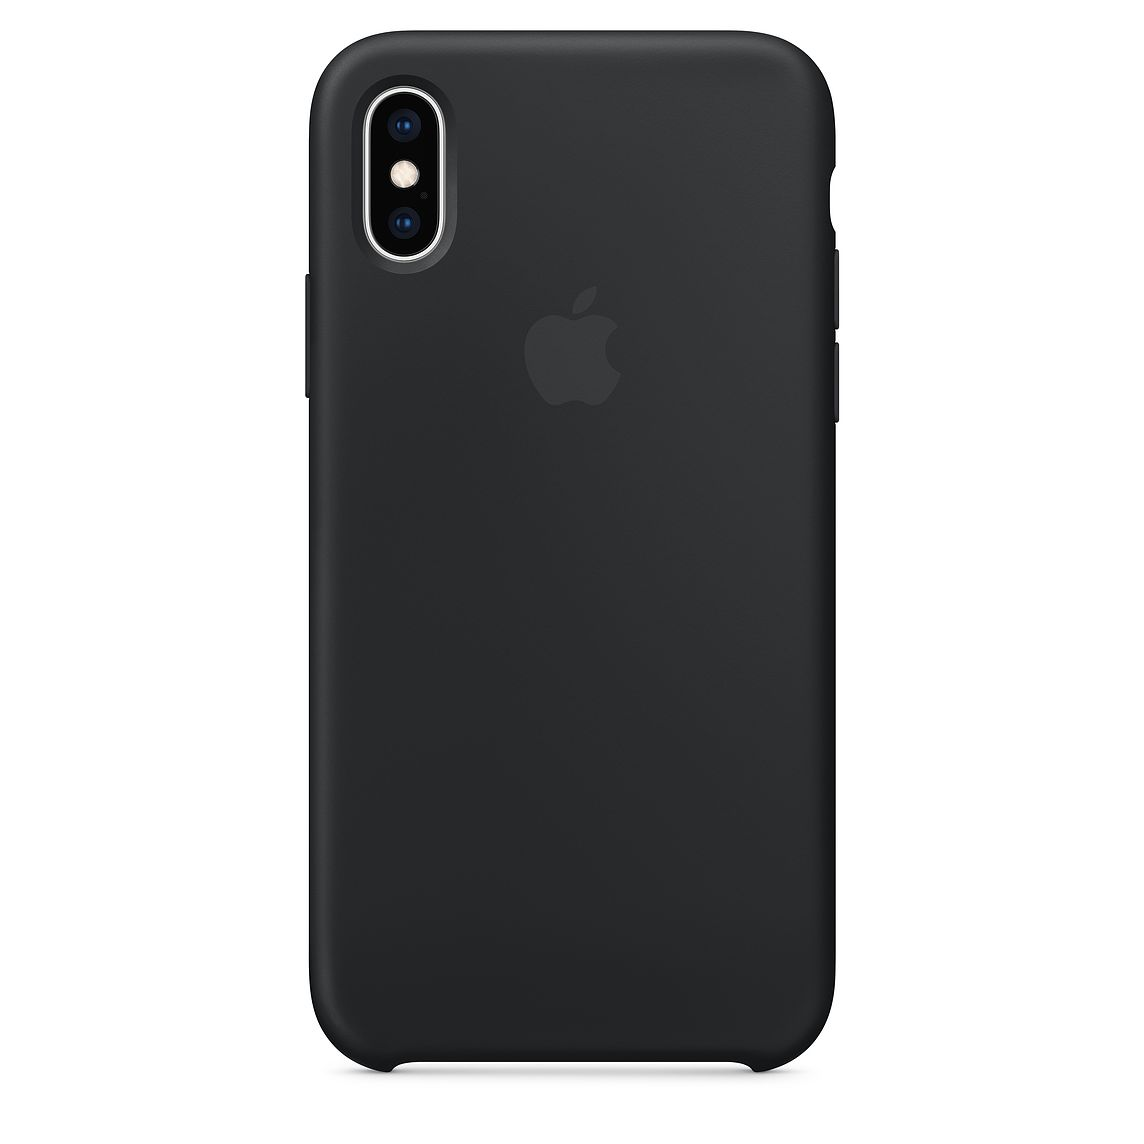 iPhone XS Max Silicone Case Black MRWE2FE/A